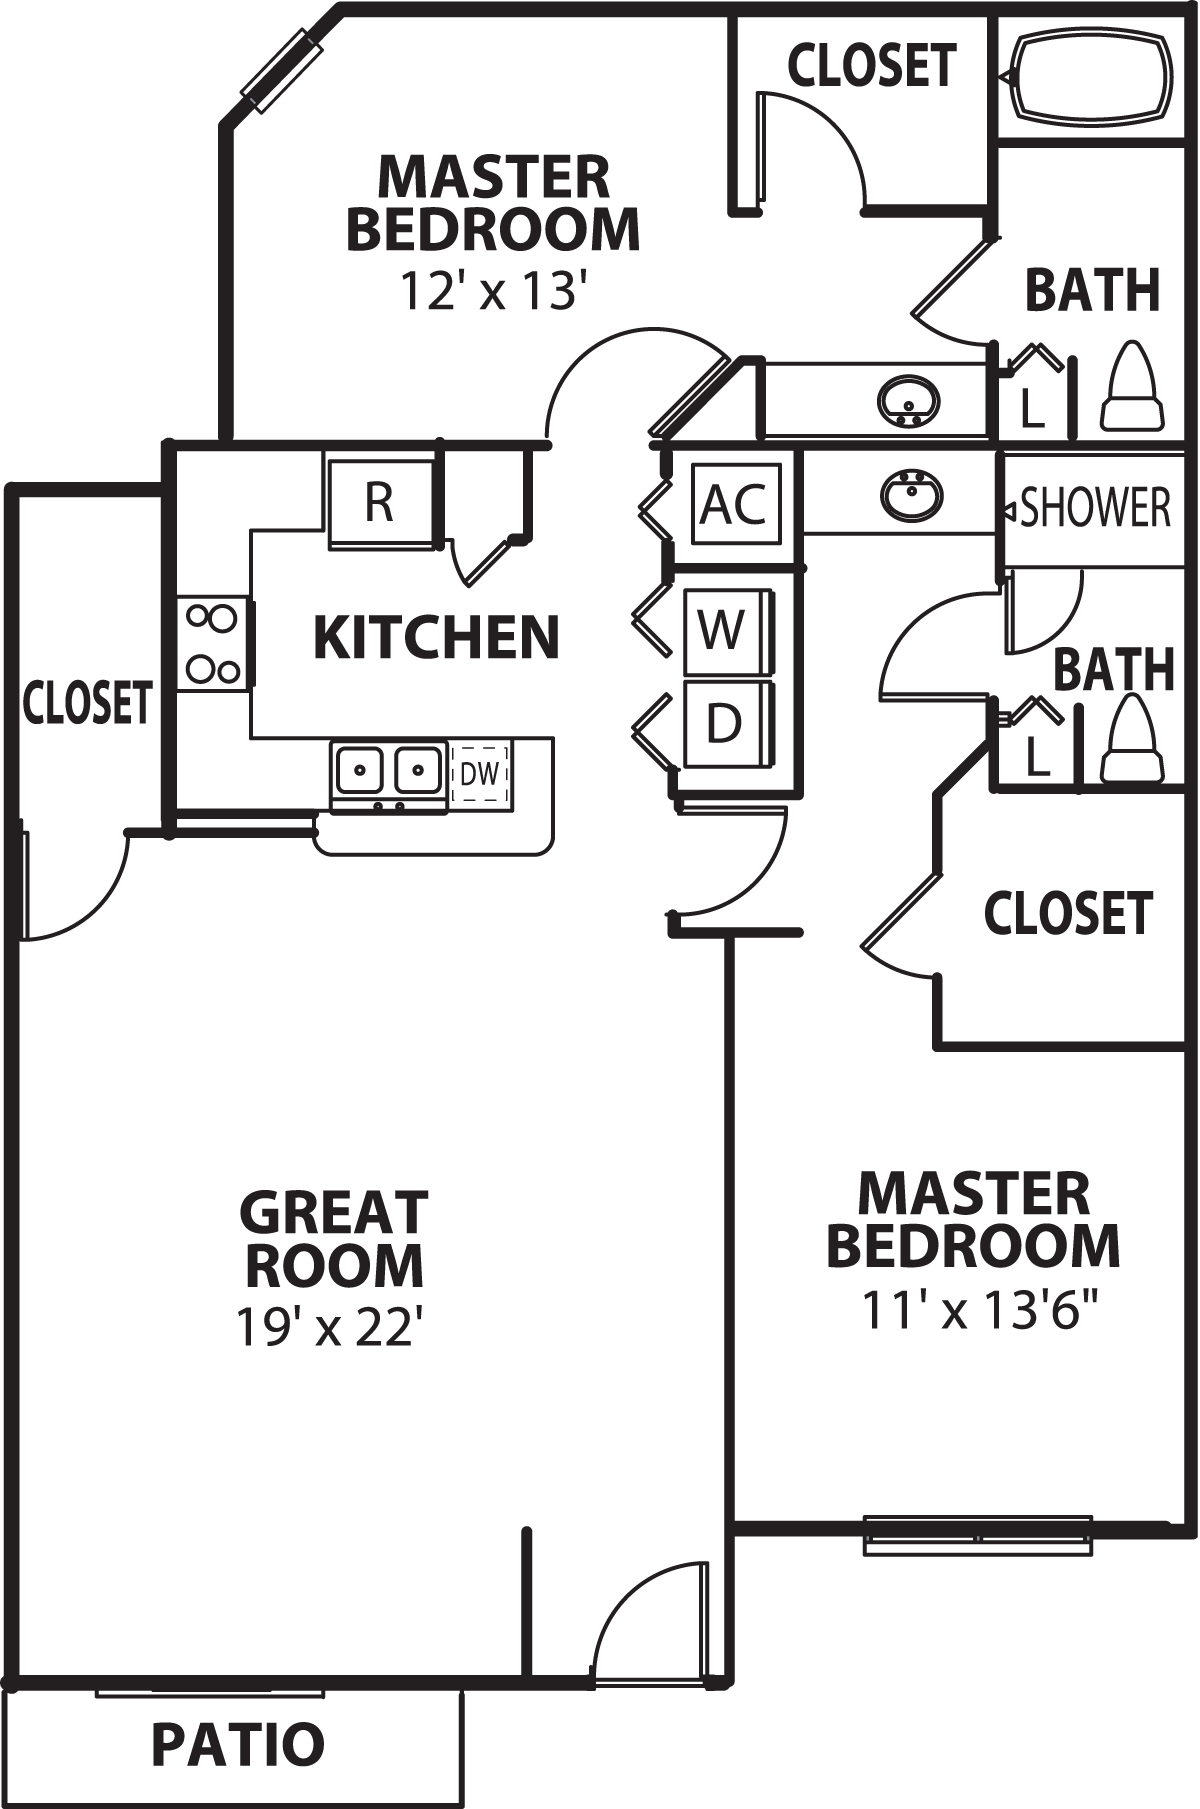 KINGSMILL Floor Plan 11